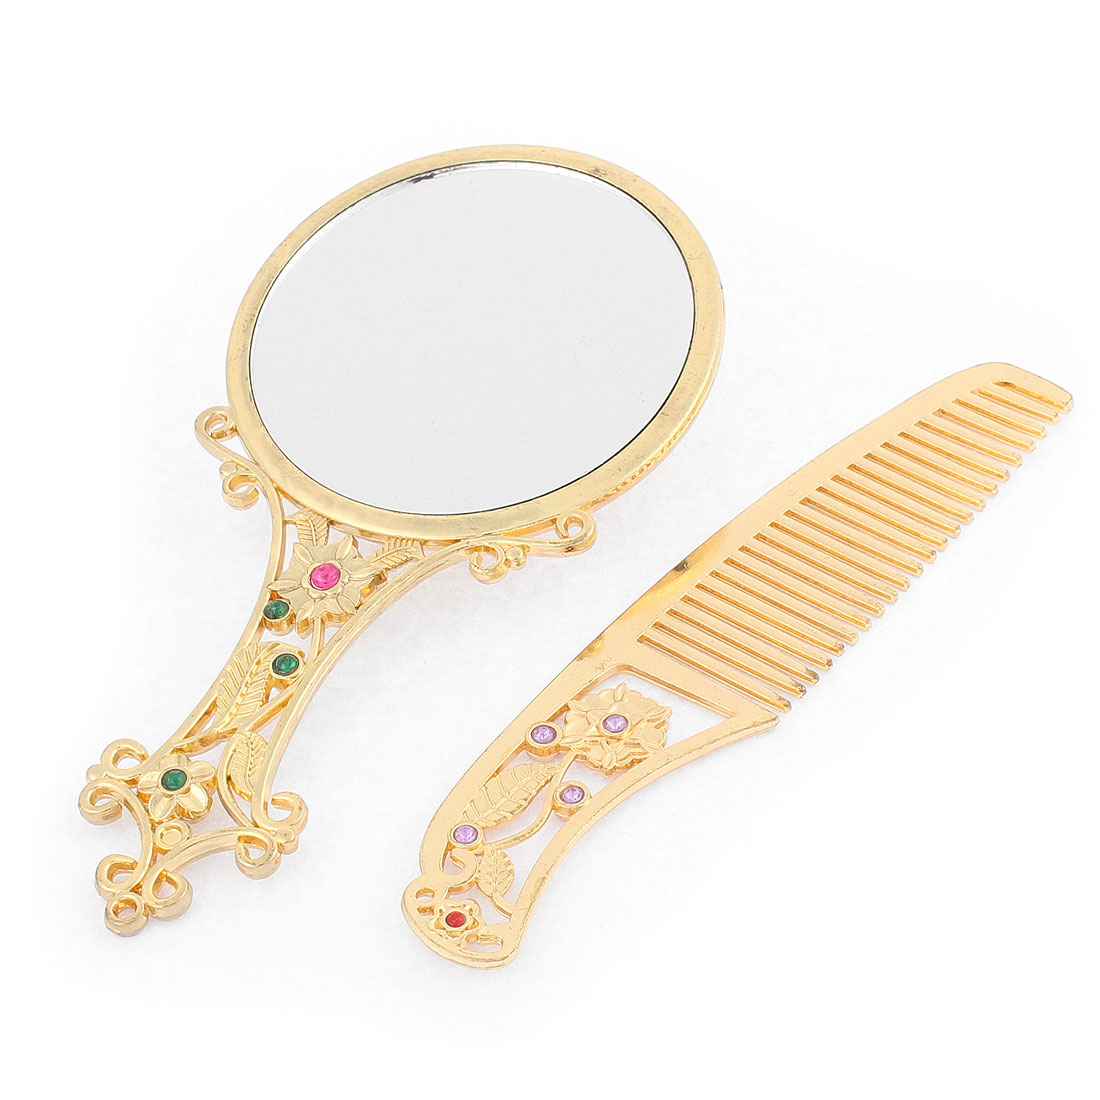 Flower Heart Shaped Faux Rhinestone Decor Handheld Cosmetic Mirror Comb Set